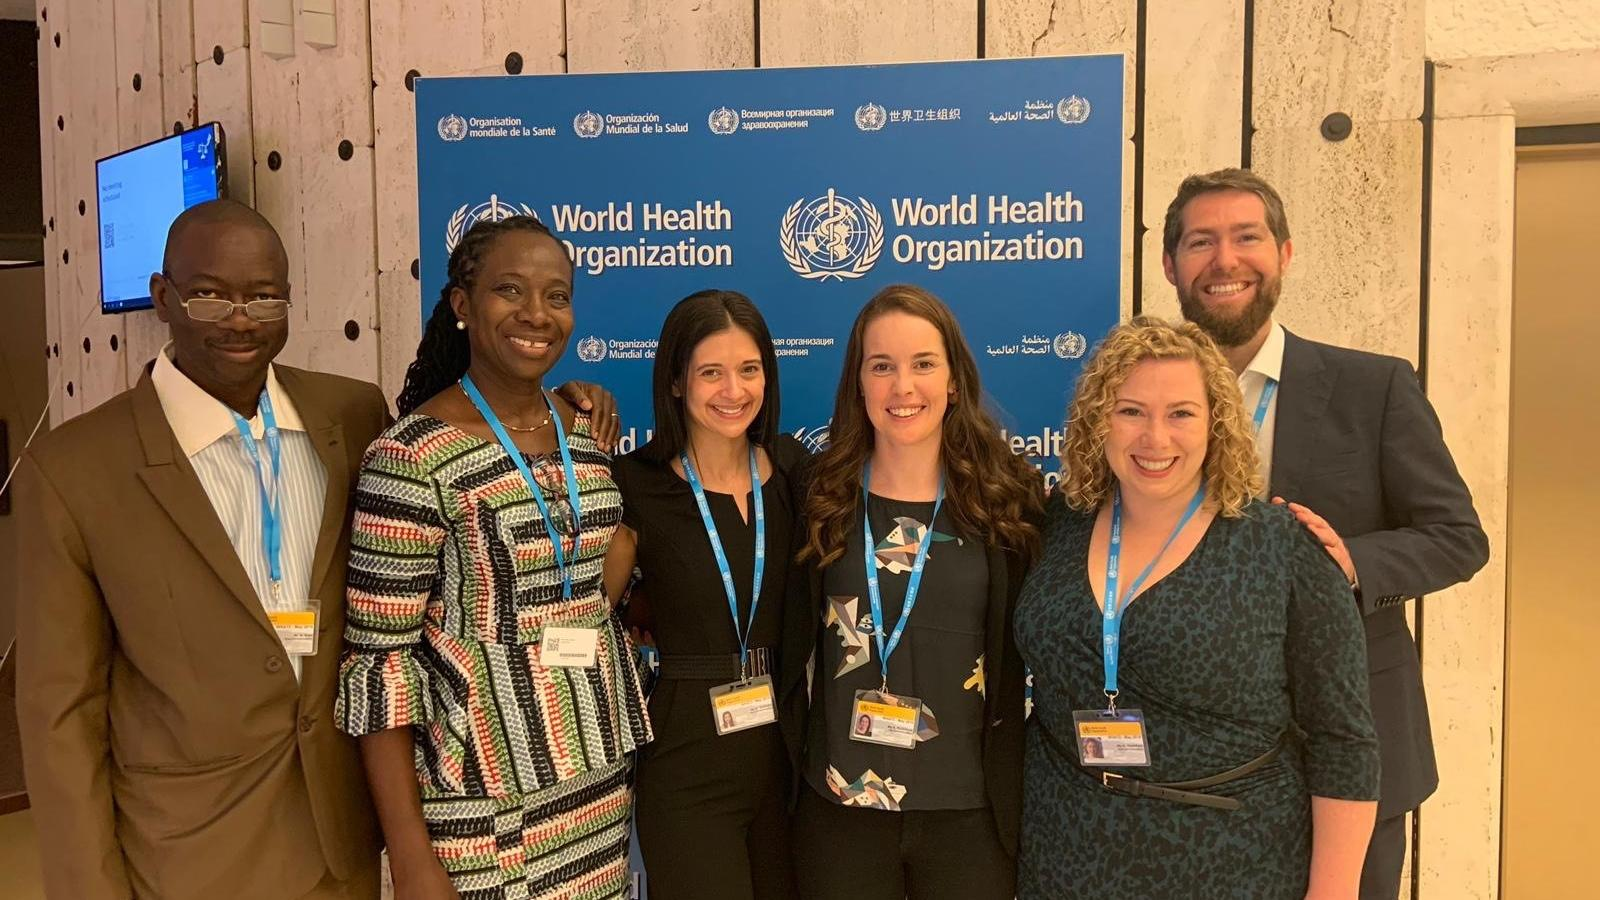 WaterAid delegates at the World Health Assembly 2019